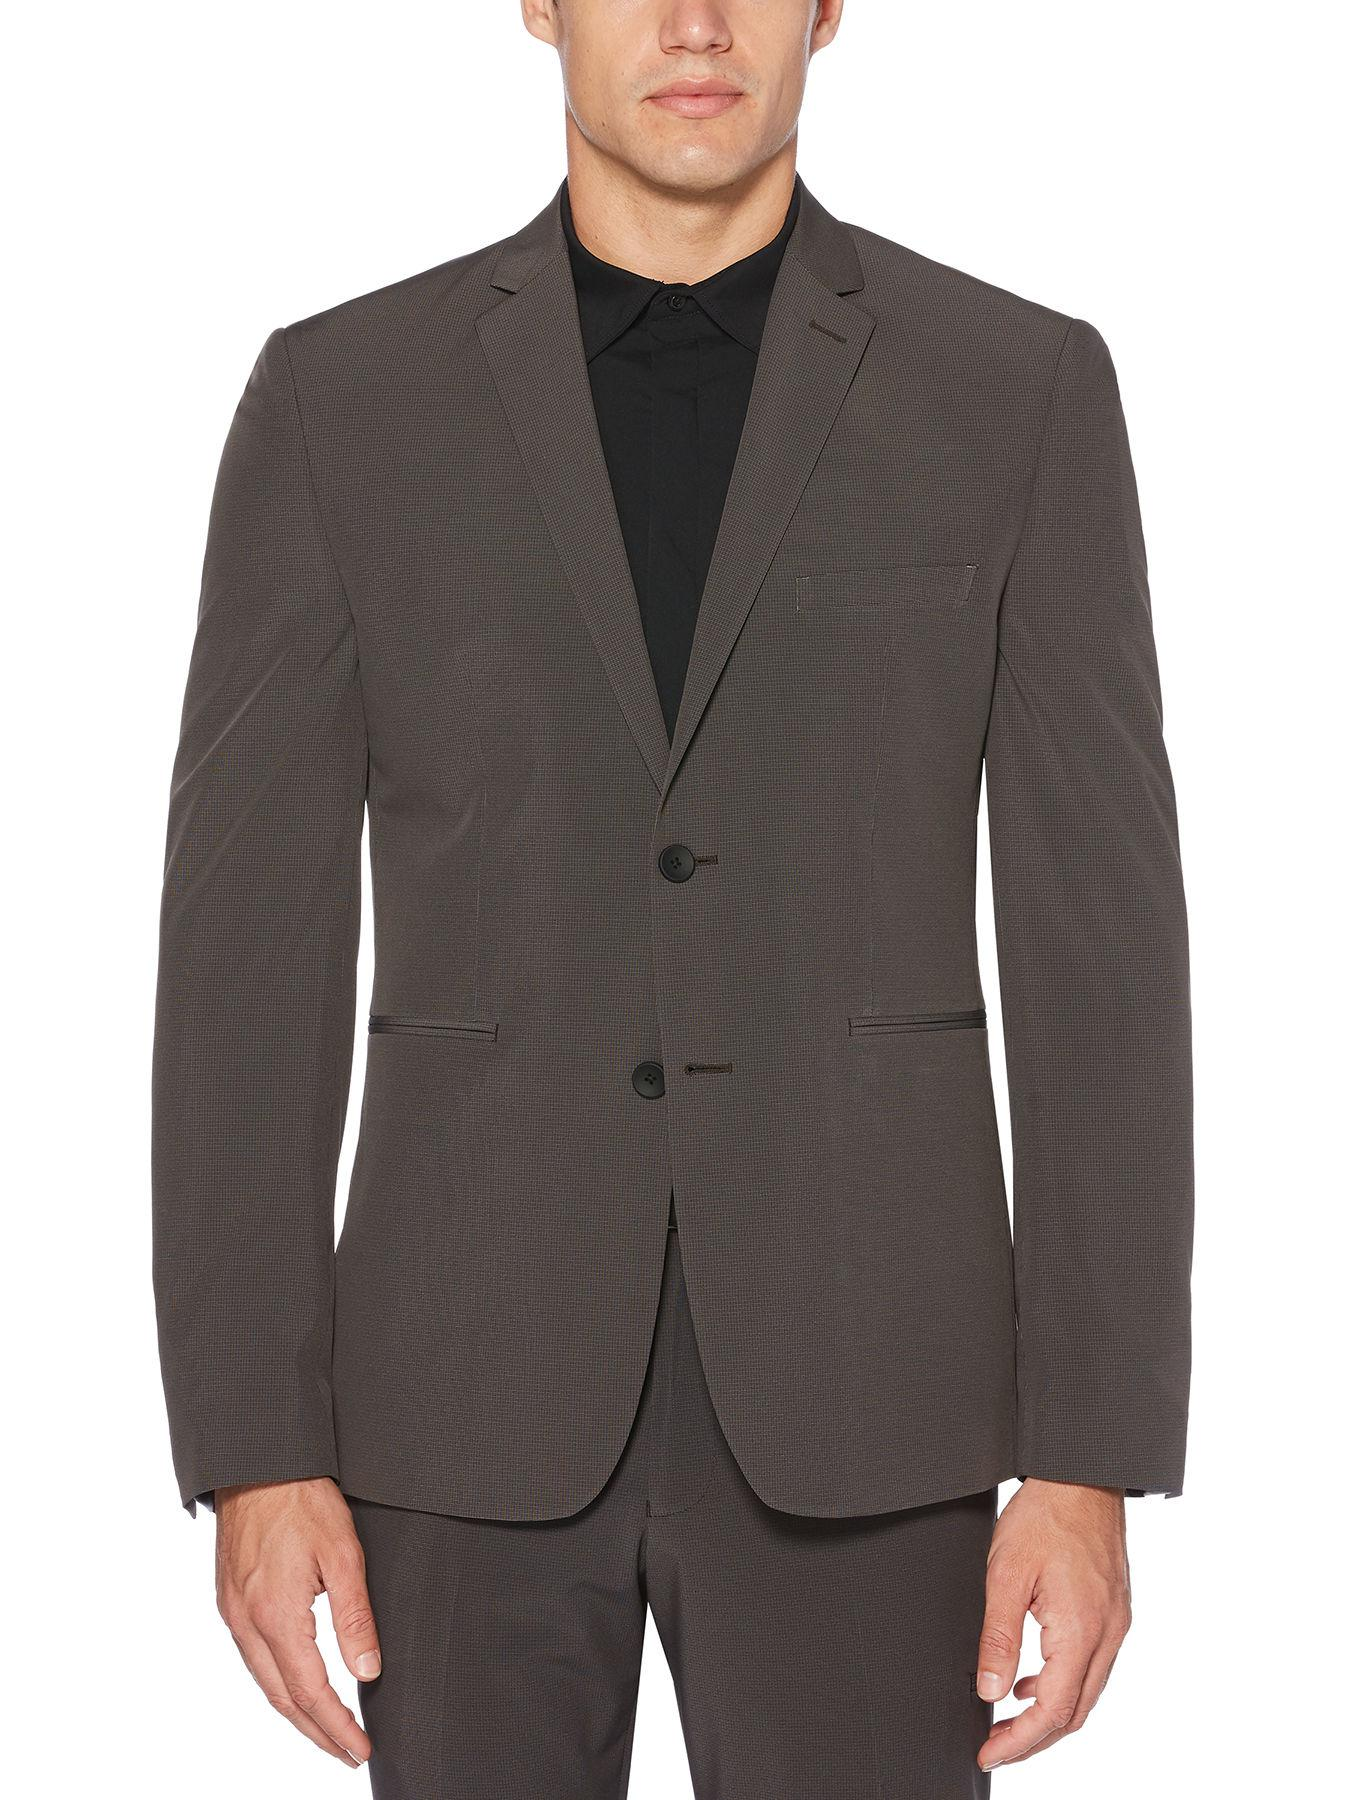 510f4f149f Lyst - Perry Ellis Very Slim Fit Washable Grey Check Tech Suit ...